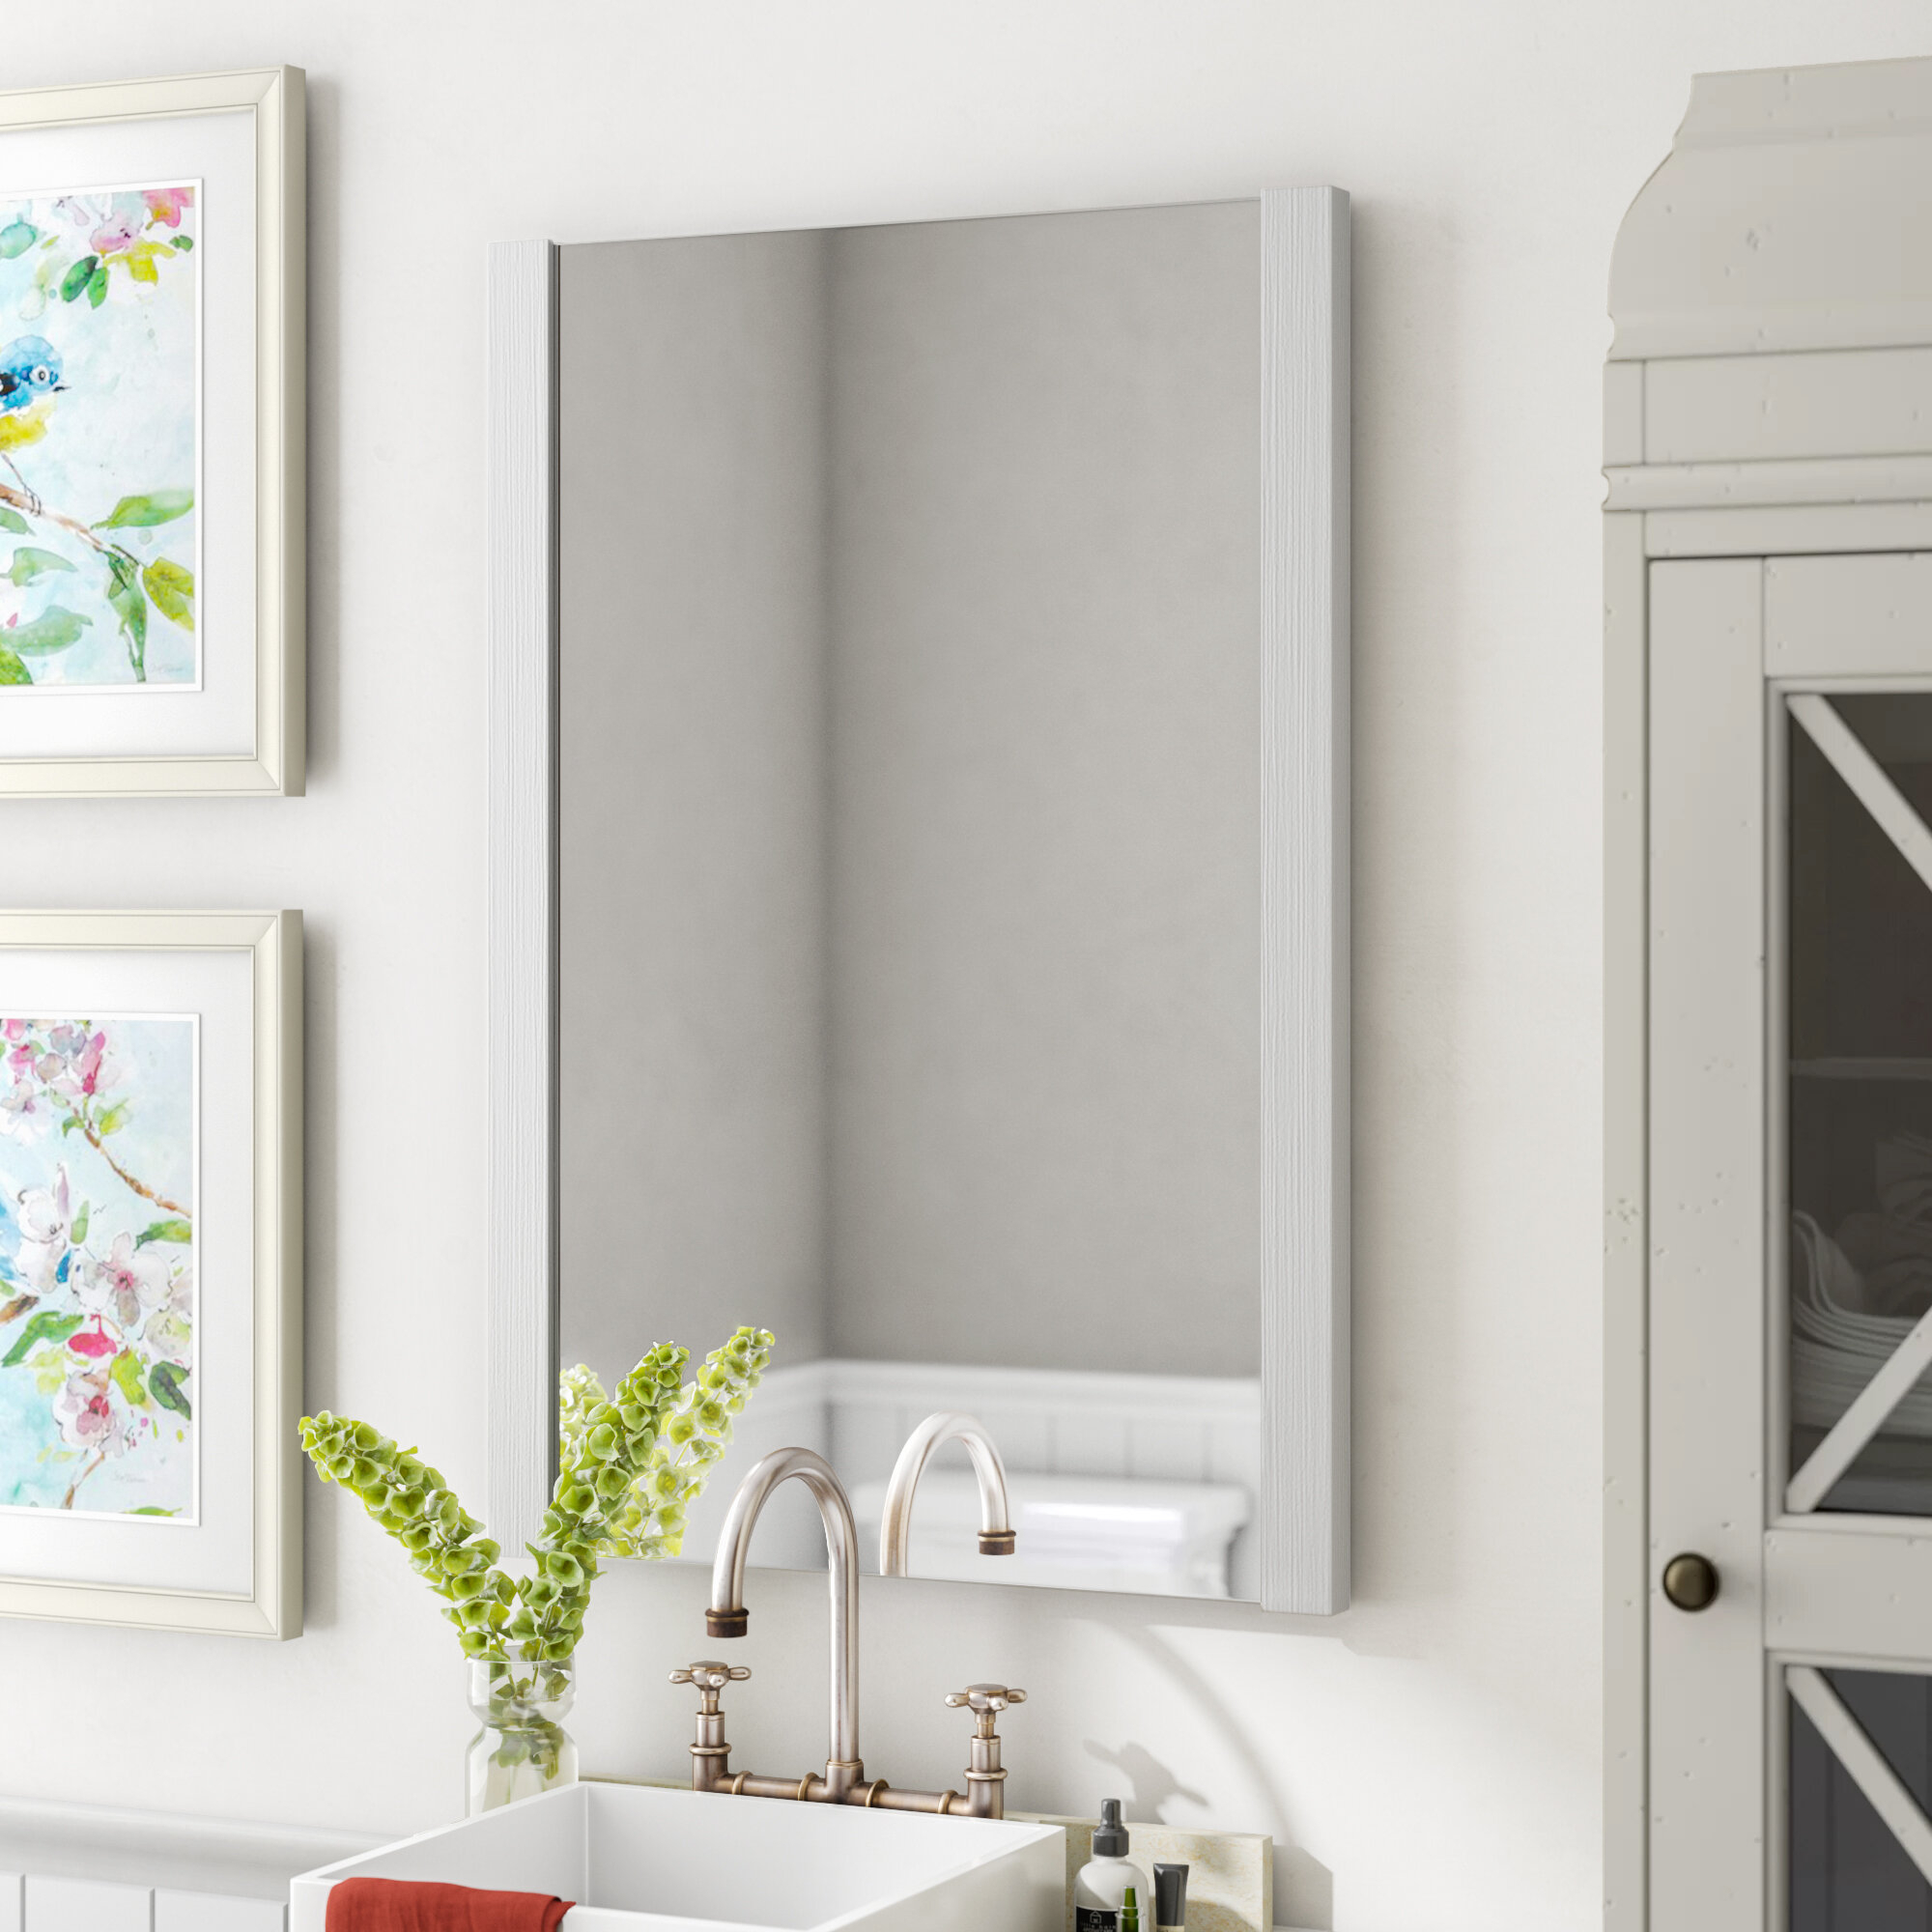 Kaleb Modern And Contemporary Accent Mirror Pertaining To Kayden Accent Mirrors (Gallery 23 of 30)